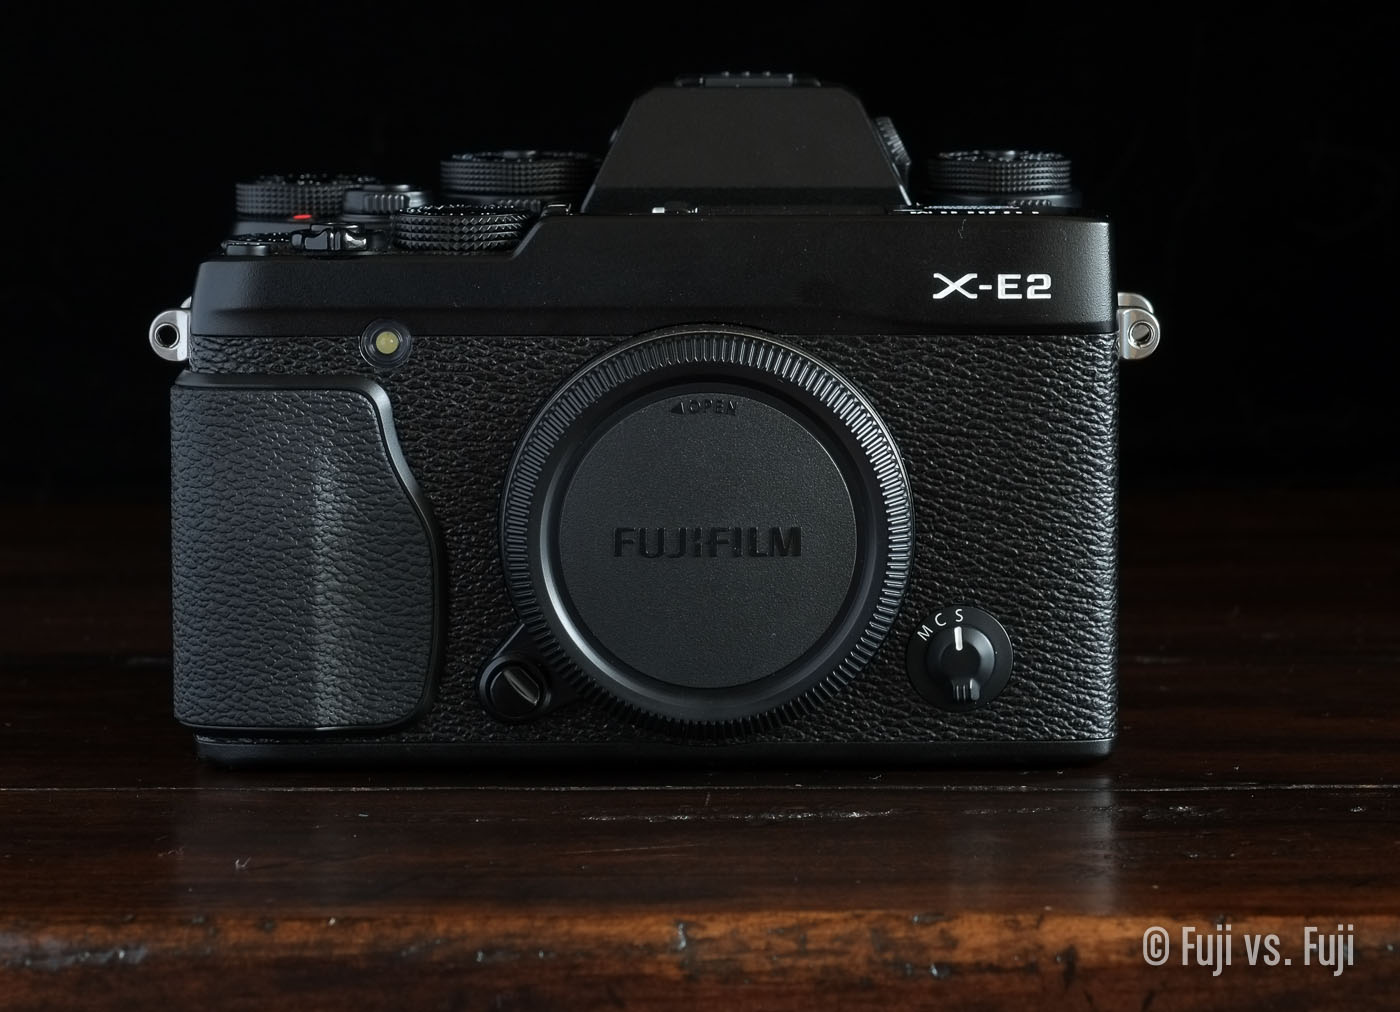 The FujifilmX-E2 in front of the X-T1. The viewfinder hump is clearly visible over the X-E2. Perhaps this is a glimpse into the future – Click to enlarge